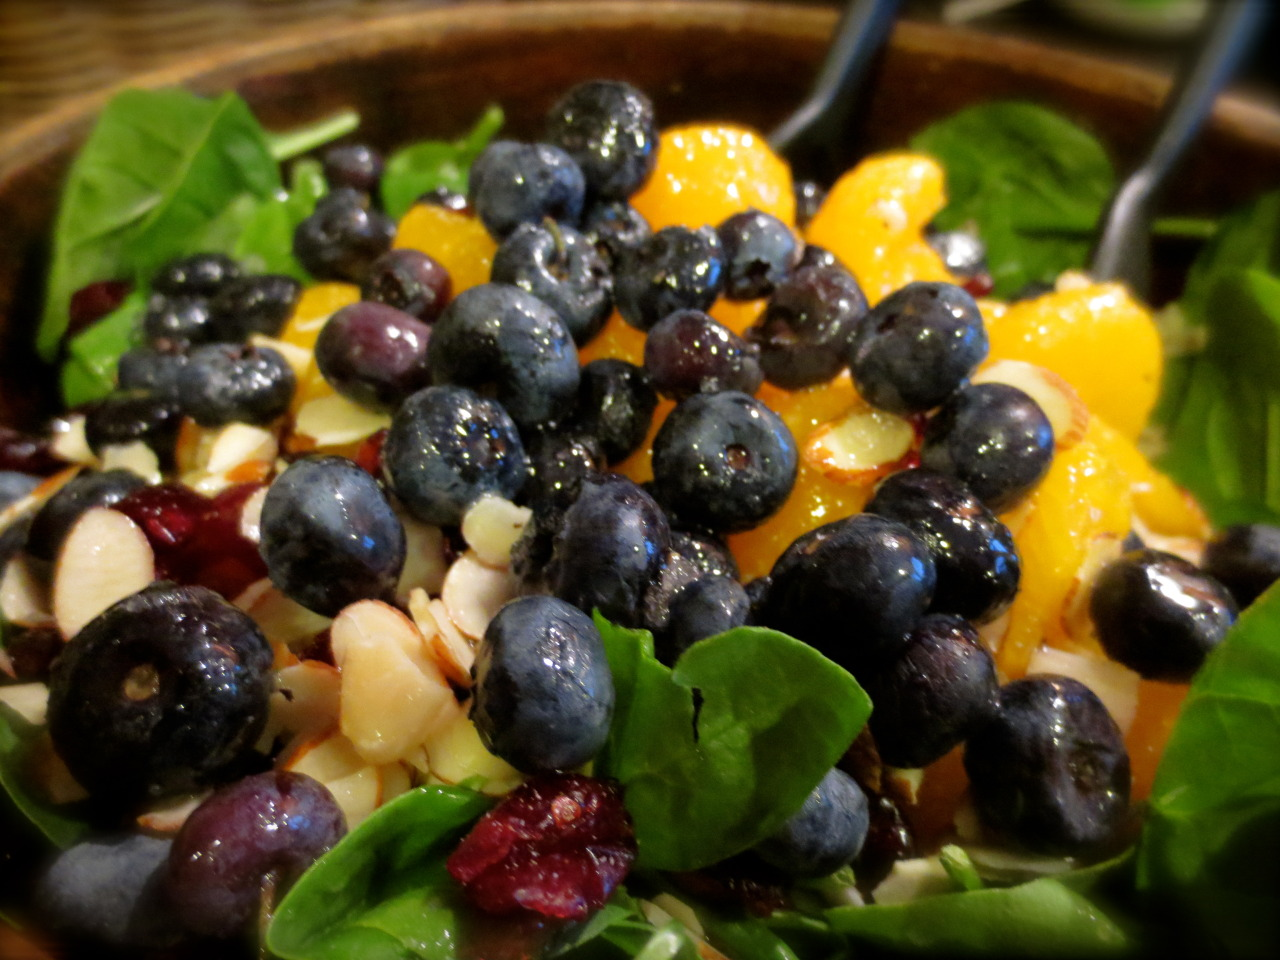 A delicious summer salad my family makes. Spinach with blueberries, craisins, mandarin oranges, and slivered almonds. Topped with a homemade dressing.More at secretsofanamateurchef.tumblr.com